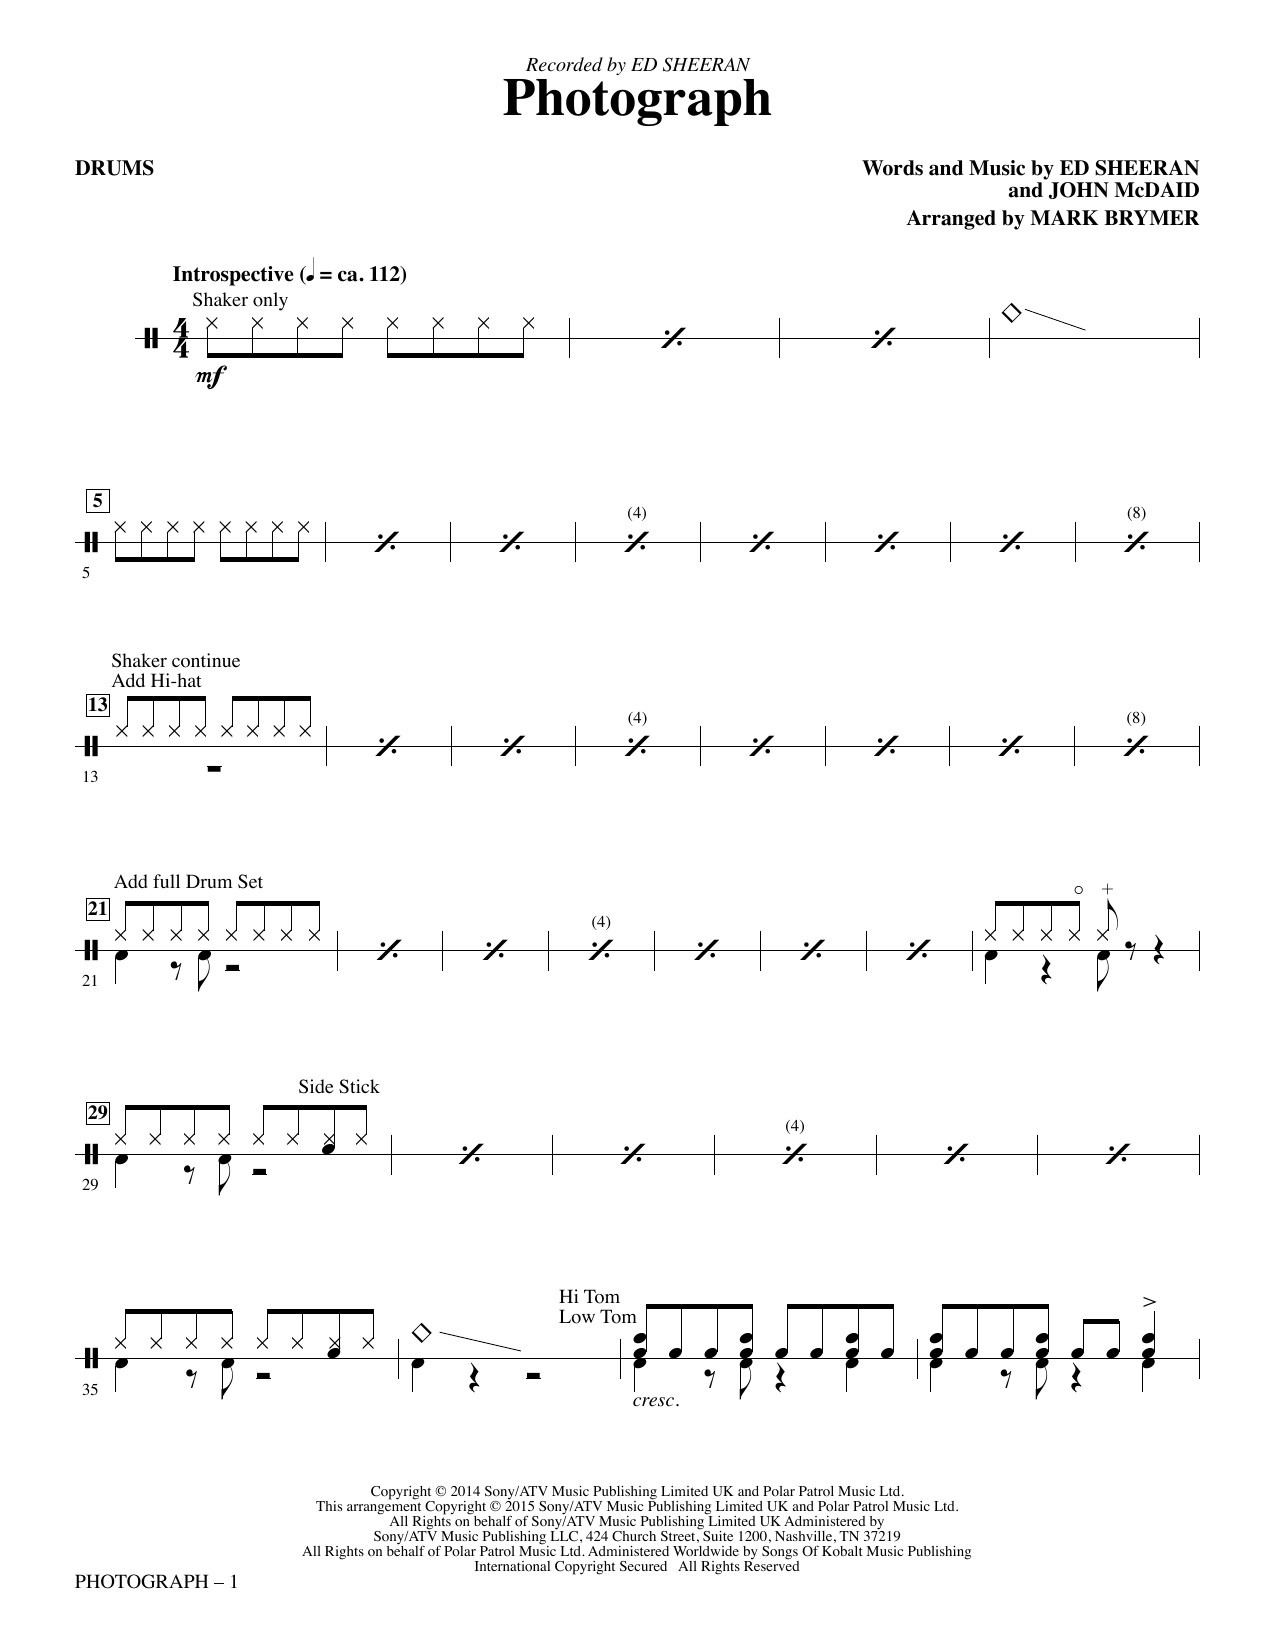 Mark Brymer Photograph - Drums sheet music notes and chords. Download Printable PDF.